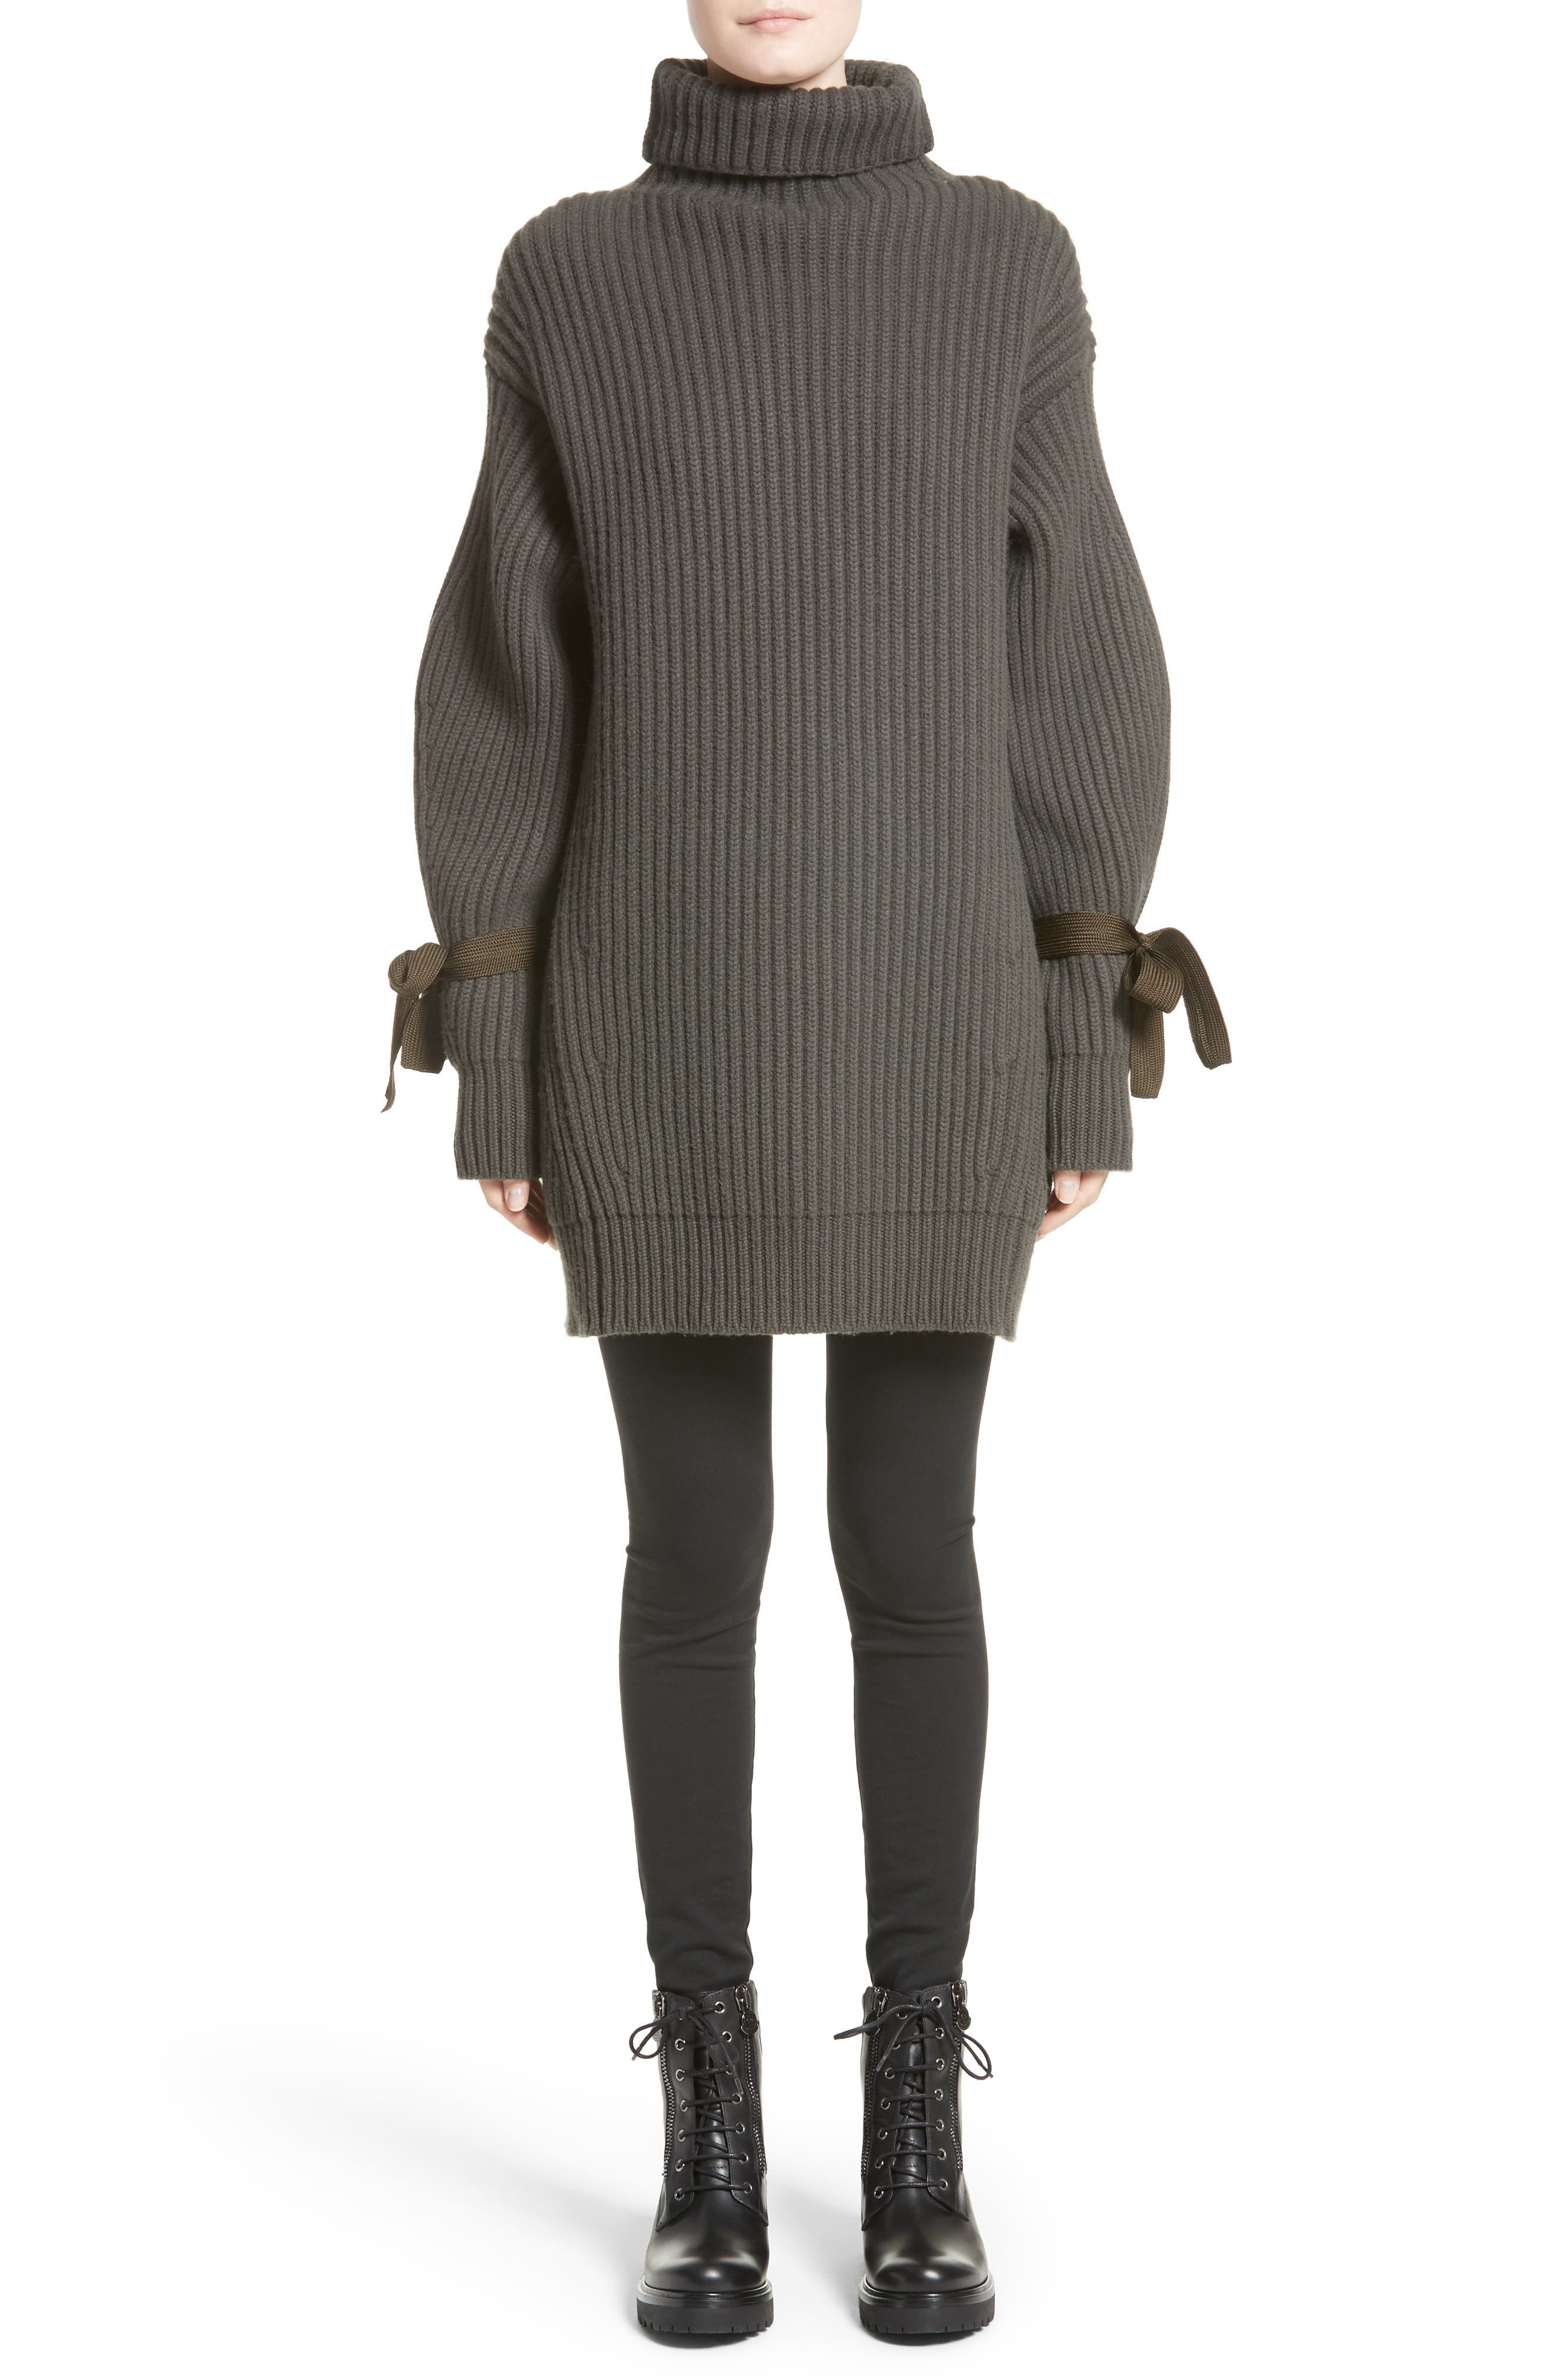 Moncler Ciclista Wool & Cashmere Sweater